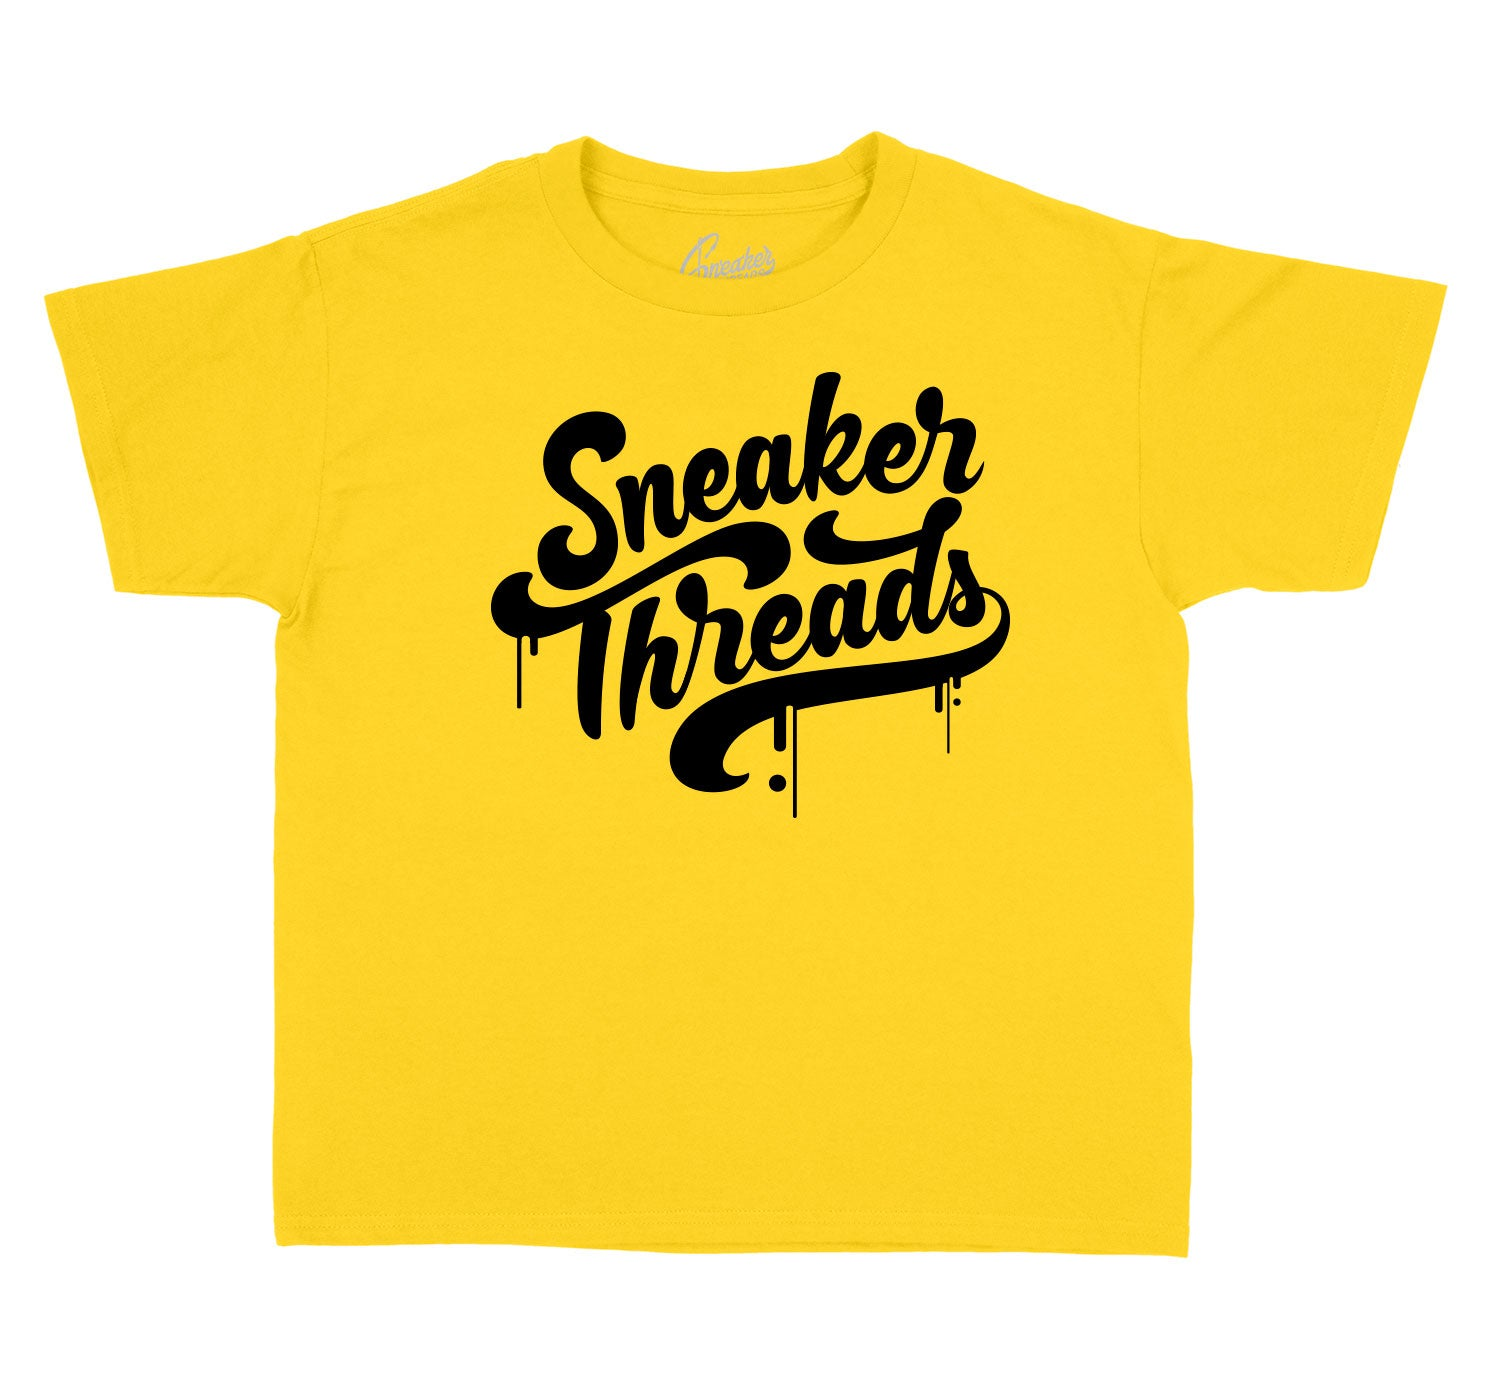 Kids shirt to match Jordan 9 uni gold sneaker collection